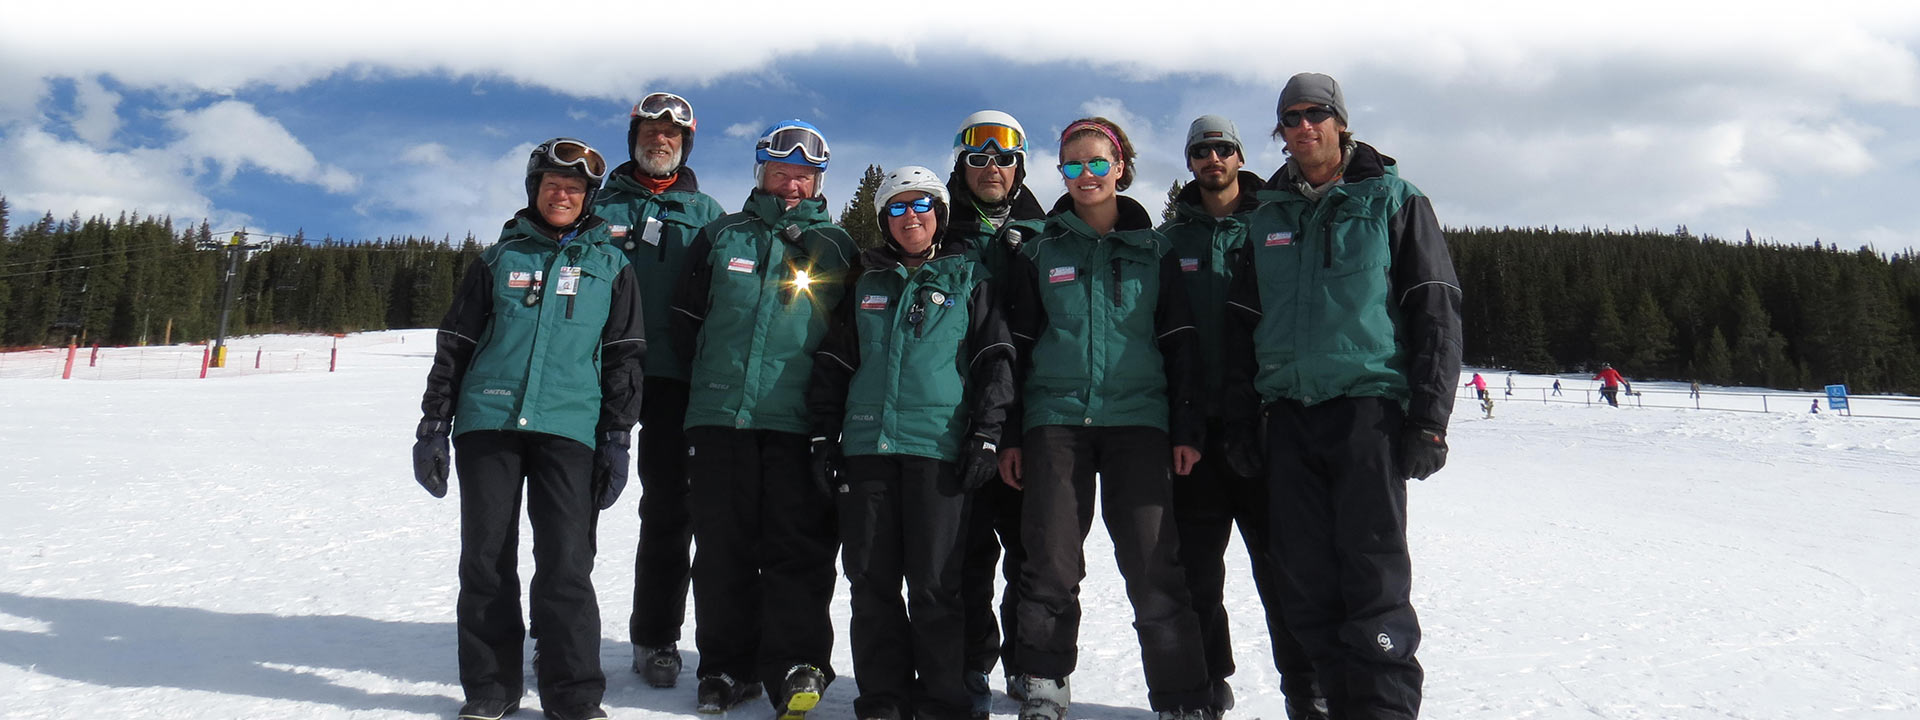 ski instructors posing on a slope